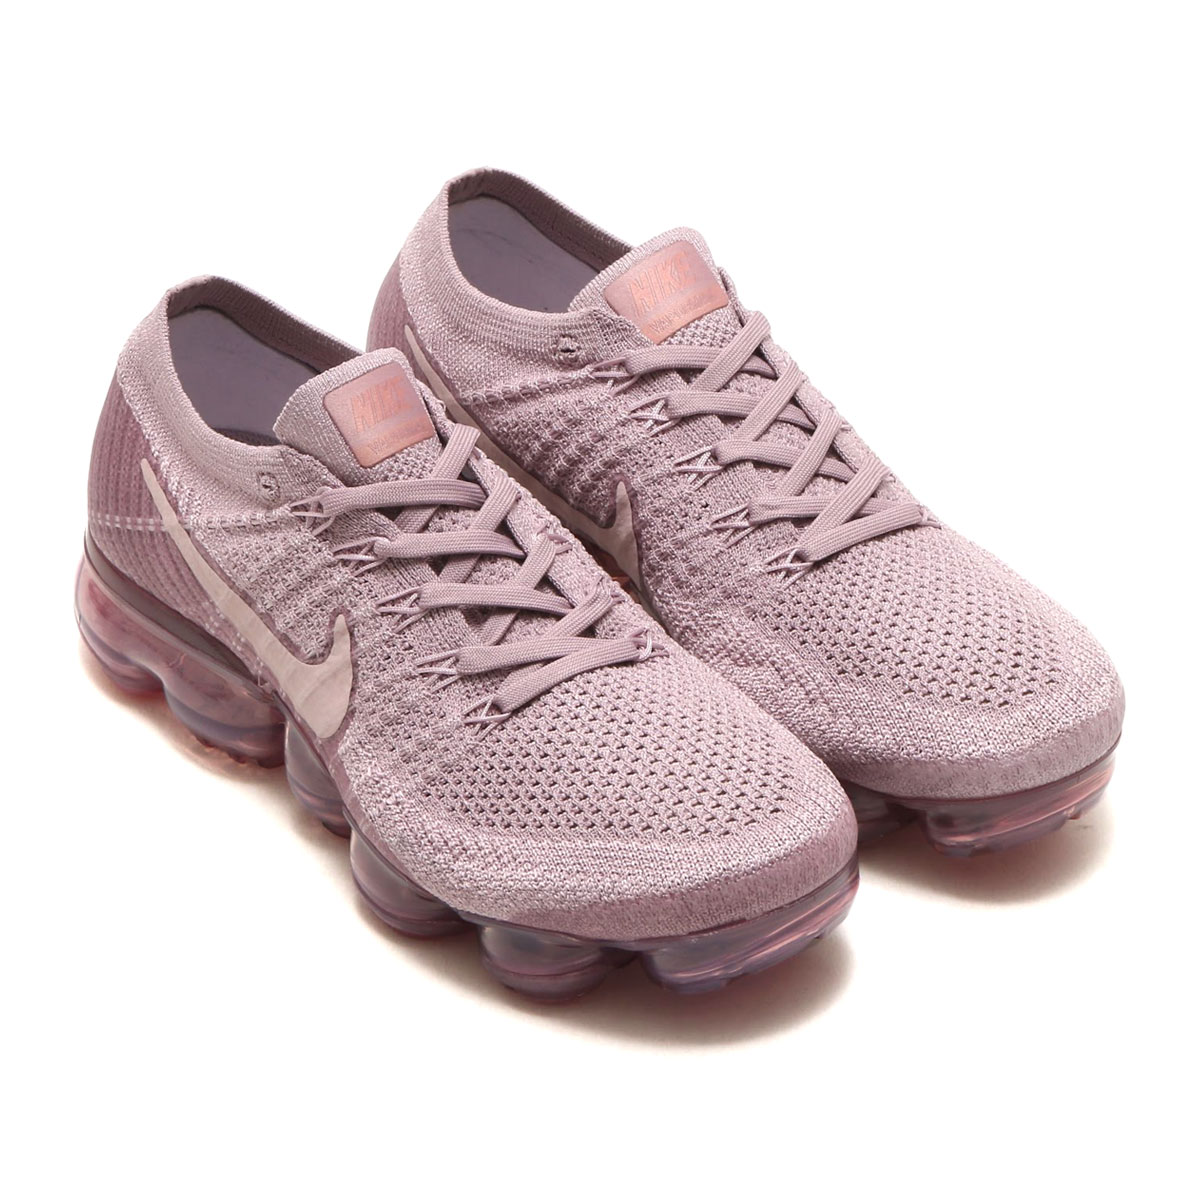 c9562cf48c NIKE WMNS AIR VAPORMAX FLYKNIT (Nike women air vapor max fried food knit)  ...